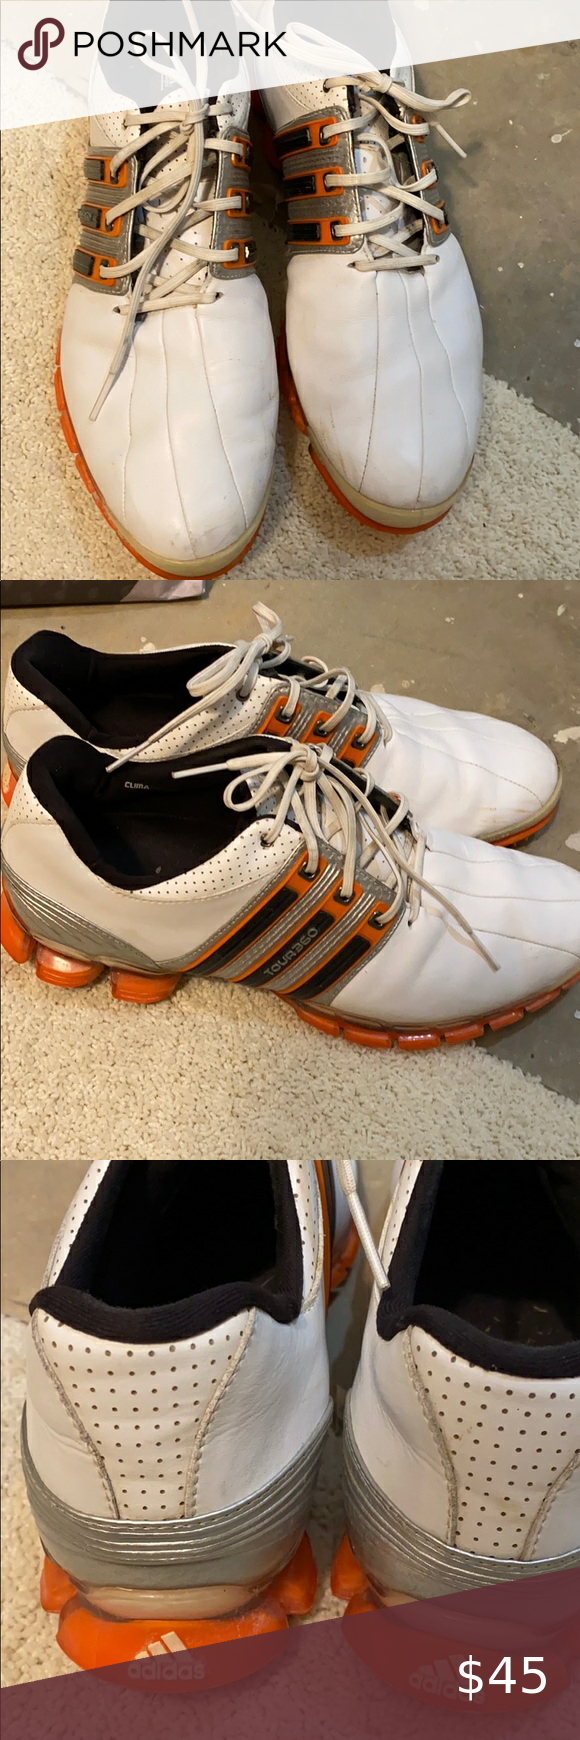 adidas golf shoes size 11